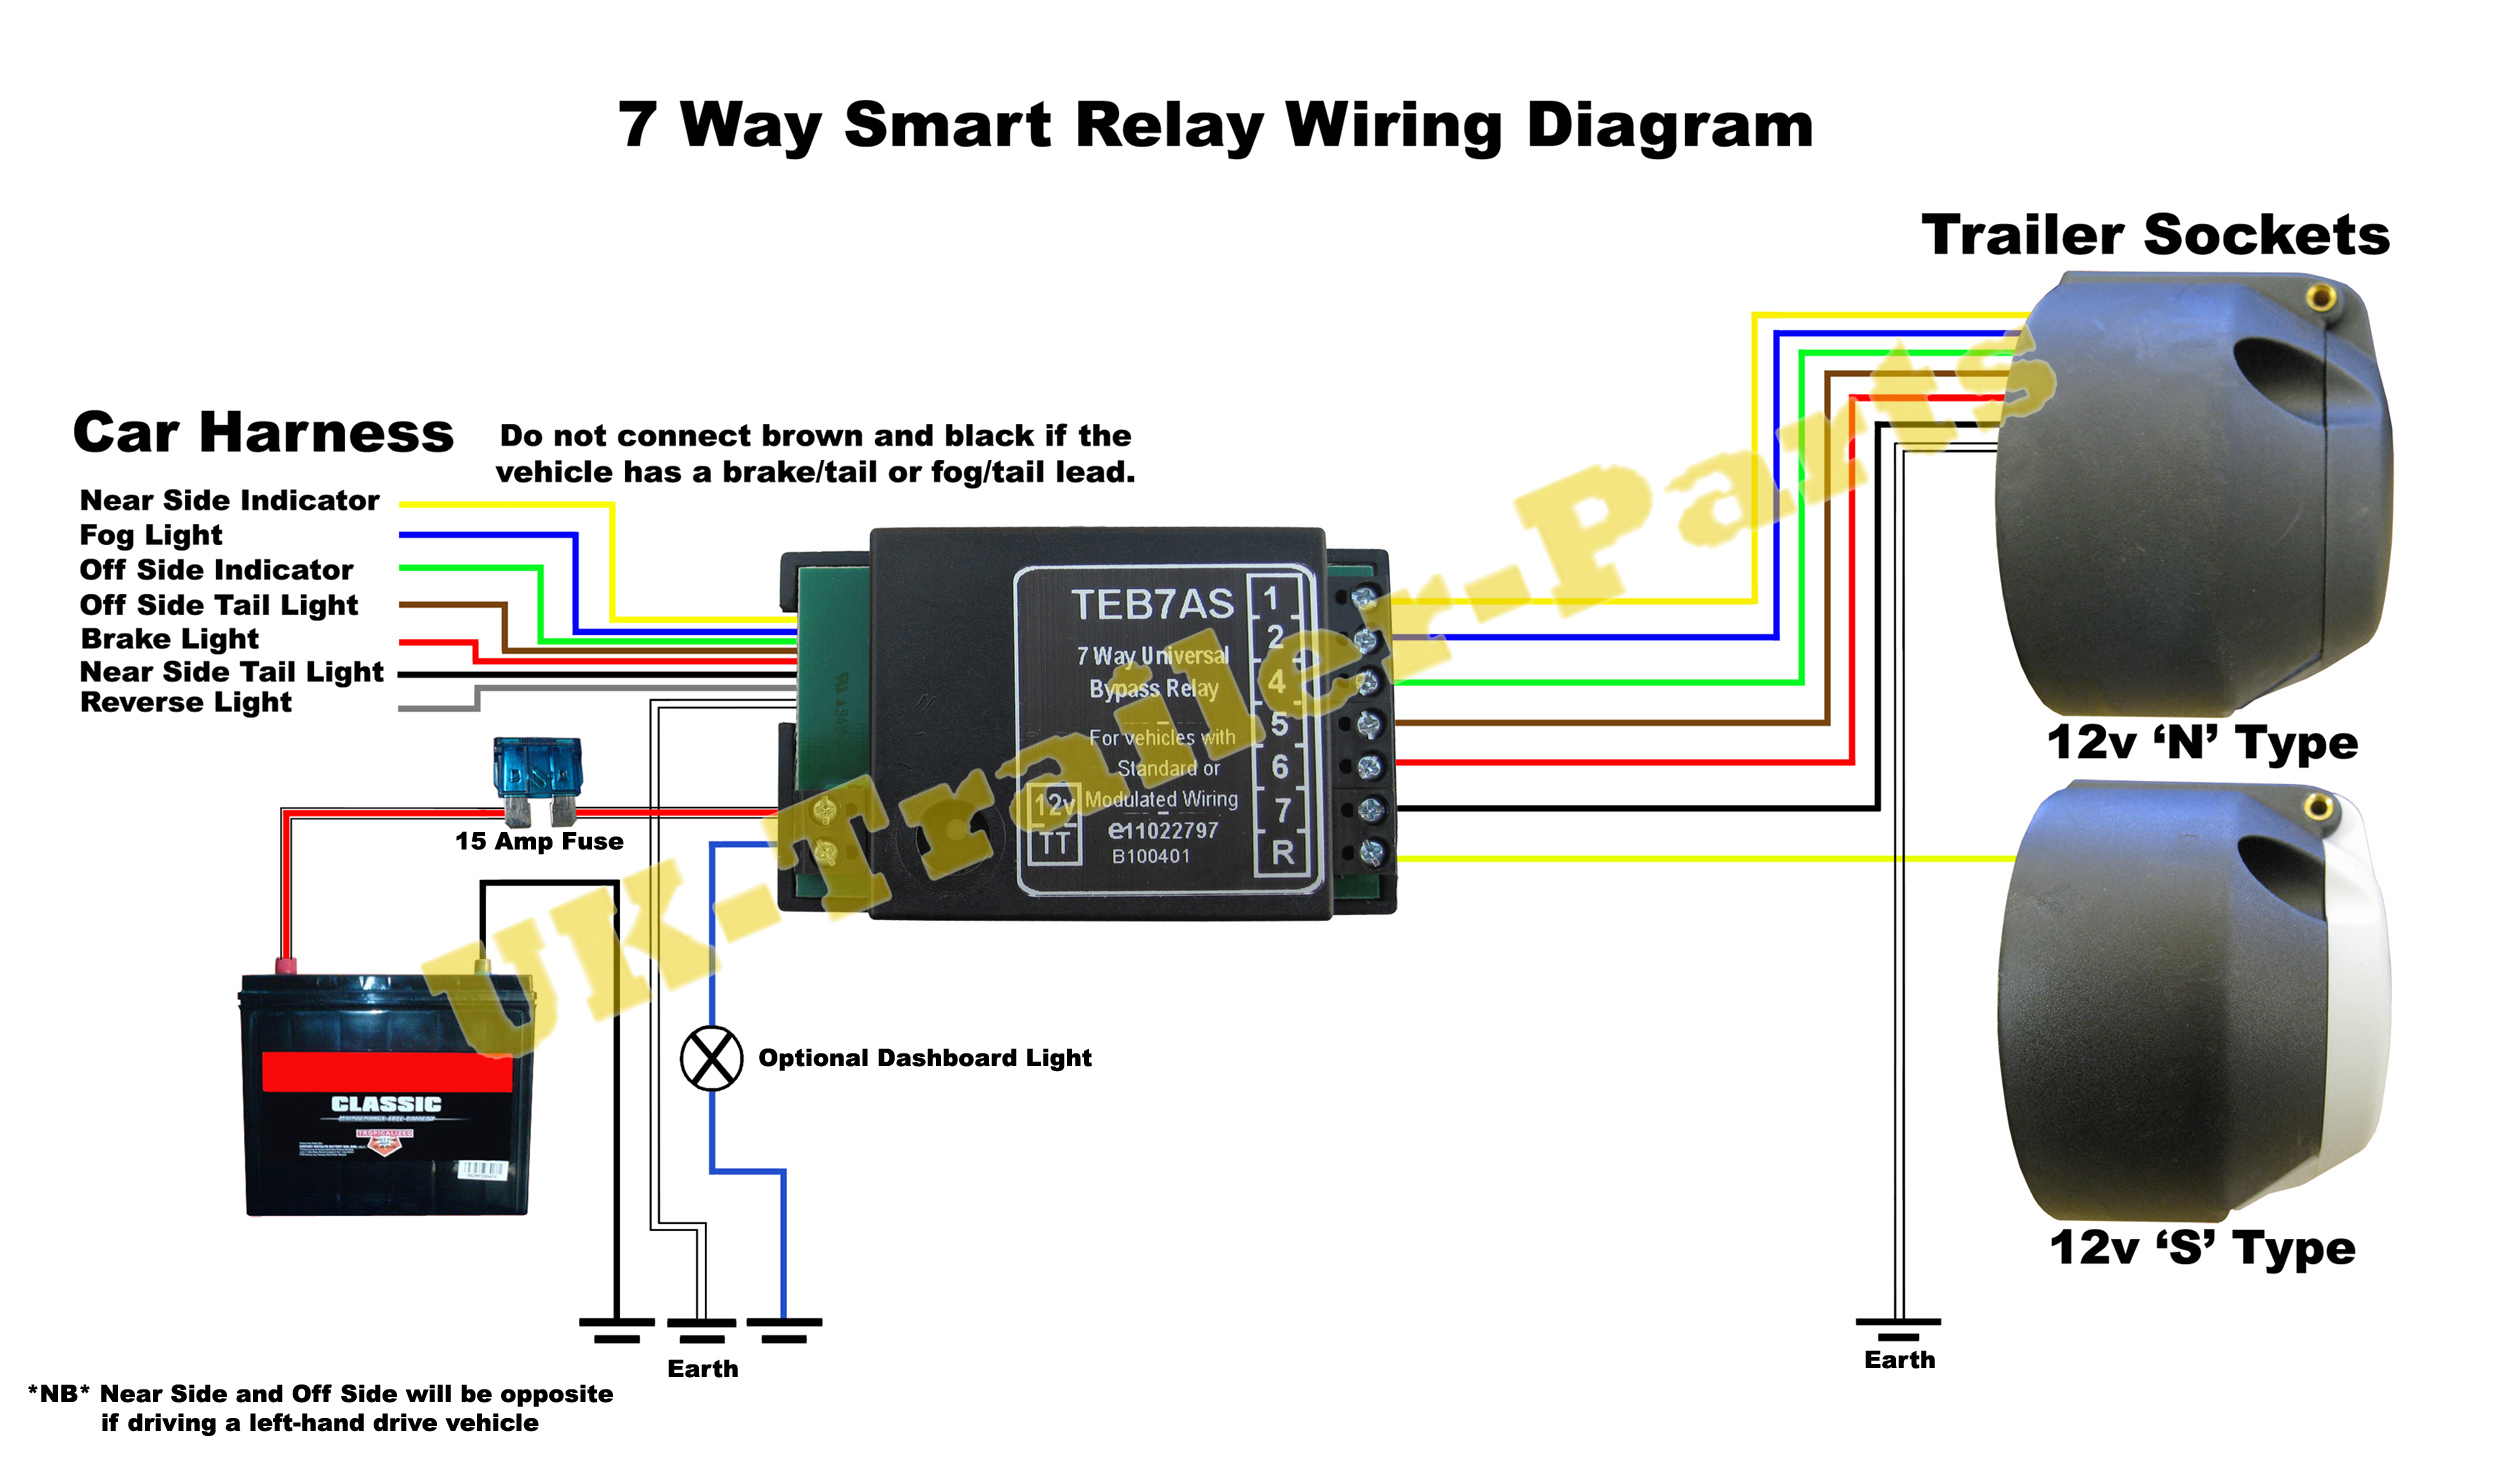 3 Way Switch Wiring Diagram With 2 Lights Best Electrical How To Wire A Three Multiple 7 Universal Bypass Relay Uk Trailer Parts 1 Light For Dummies